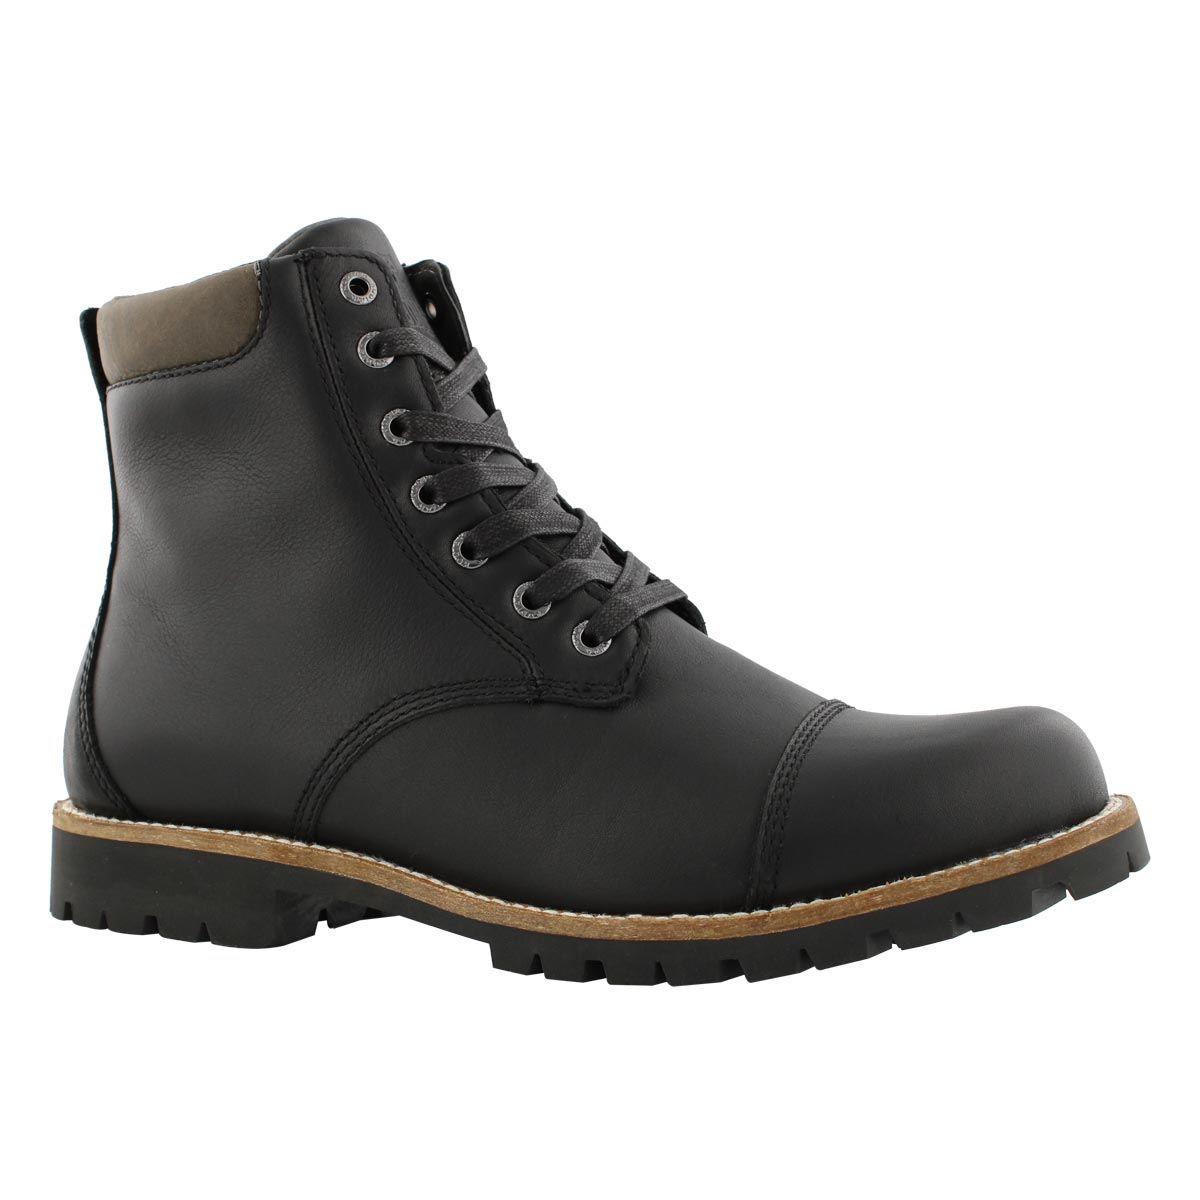 Mns Berkley blk wtpf lace up boot